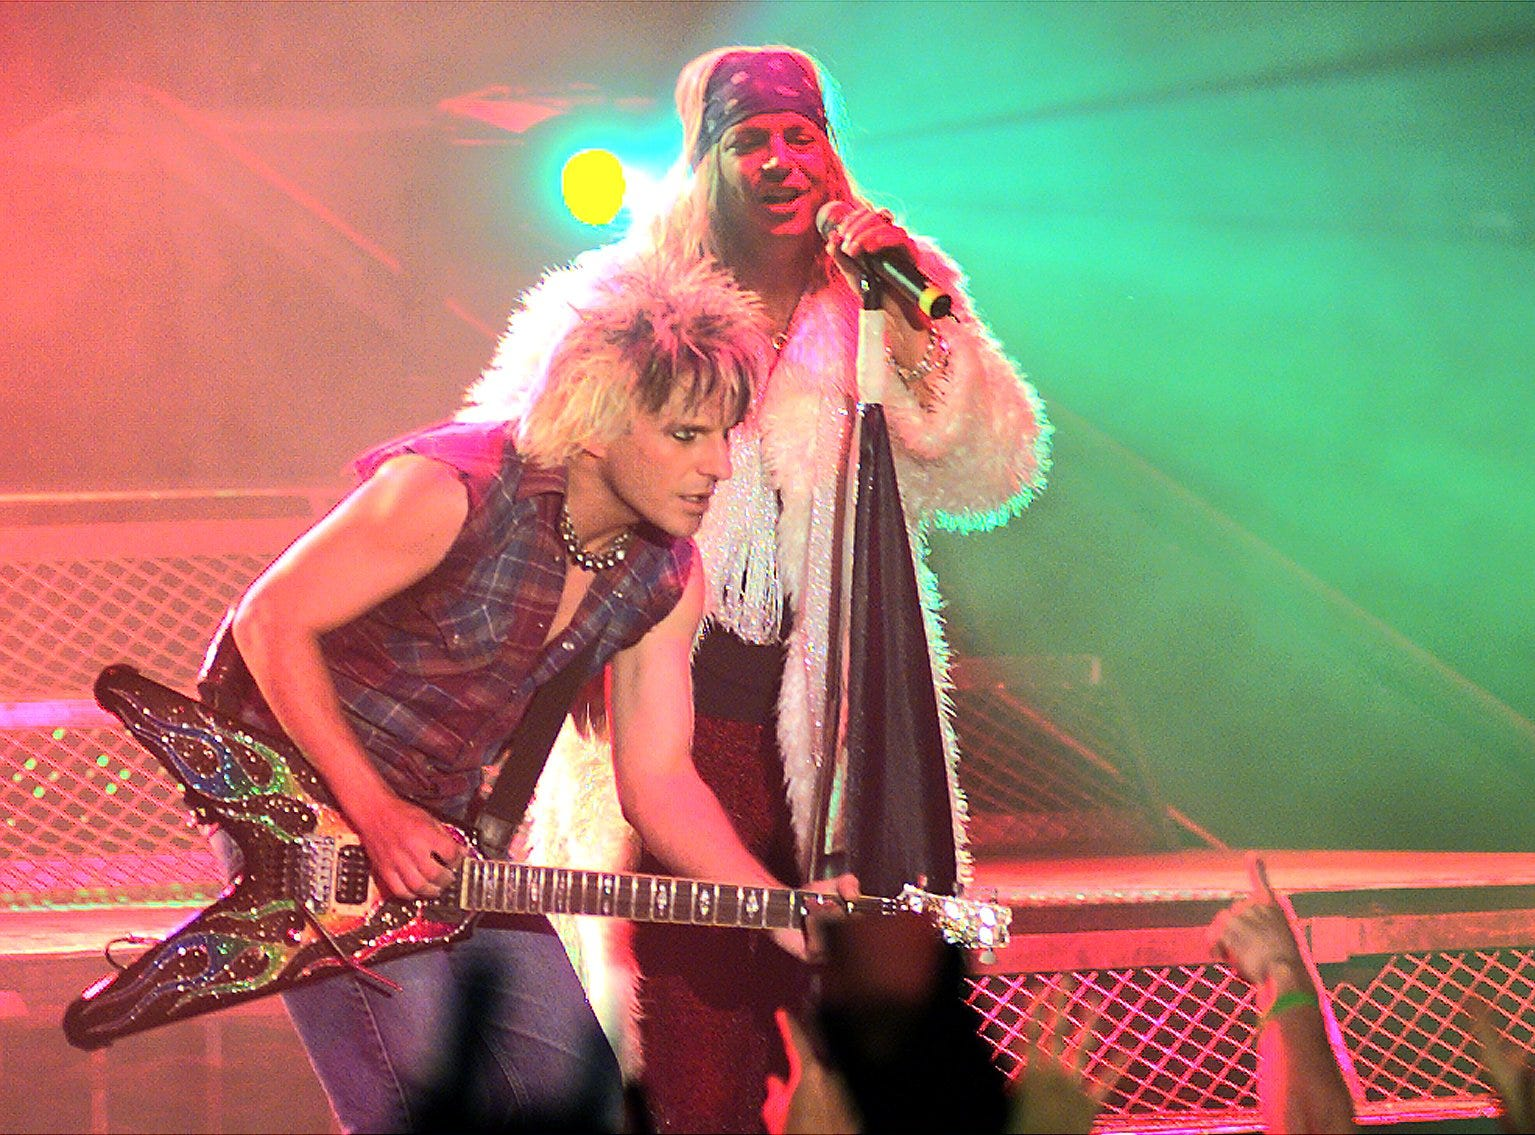 Lead singer Bret Michaels, right, takes to the stage with guitarist C.C. DeVille during Poison's sold-out performance at Oneida Bingo & Casino's Pavilion Nights in 2001.